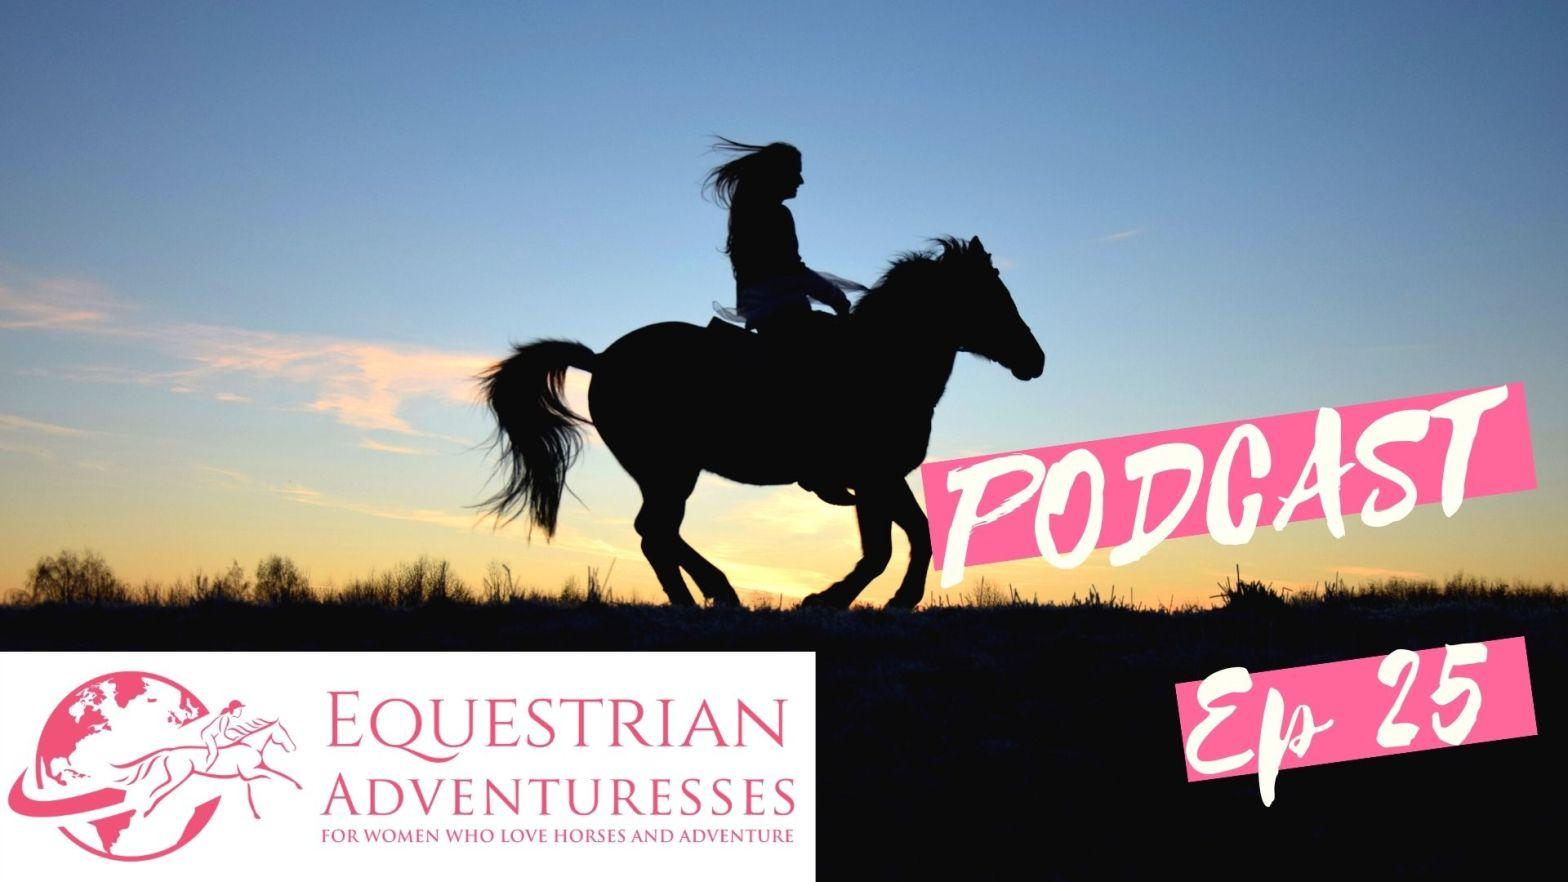 Travel and Horse Podcast - Ep 25: A Young Girl's Dream of Becoming a Cowgirl - Heather and Ute talk with Kari Beerman